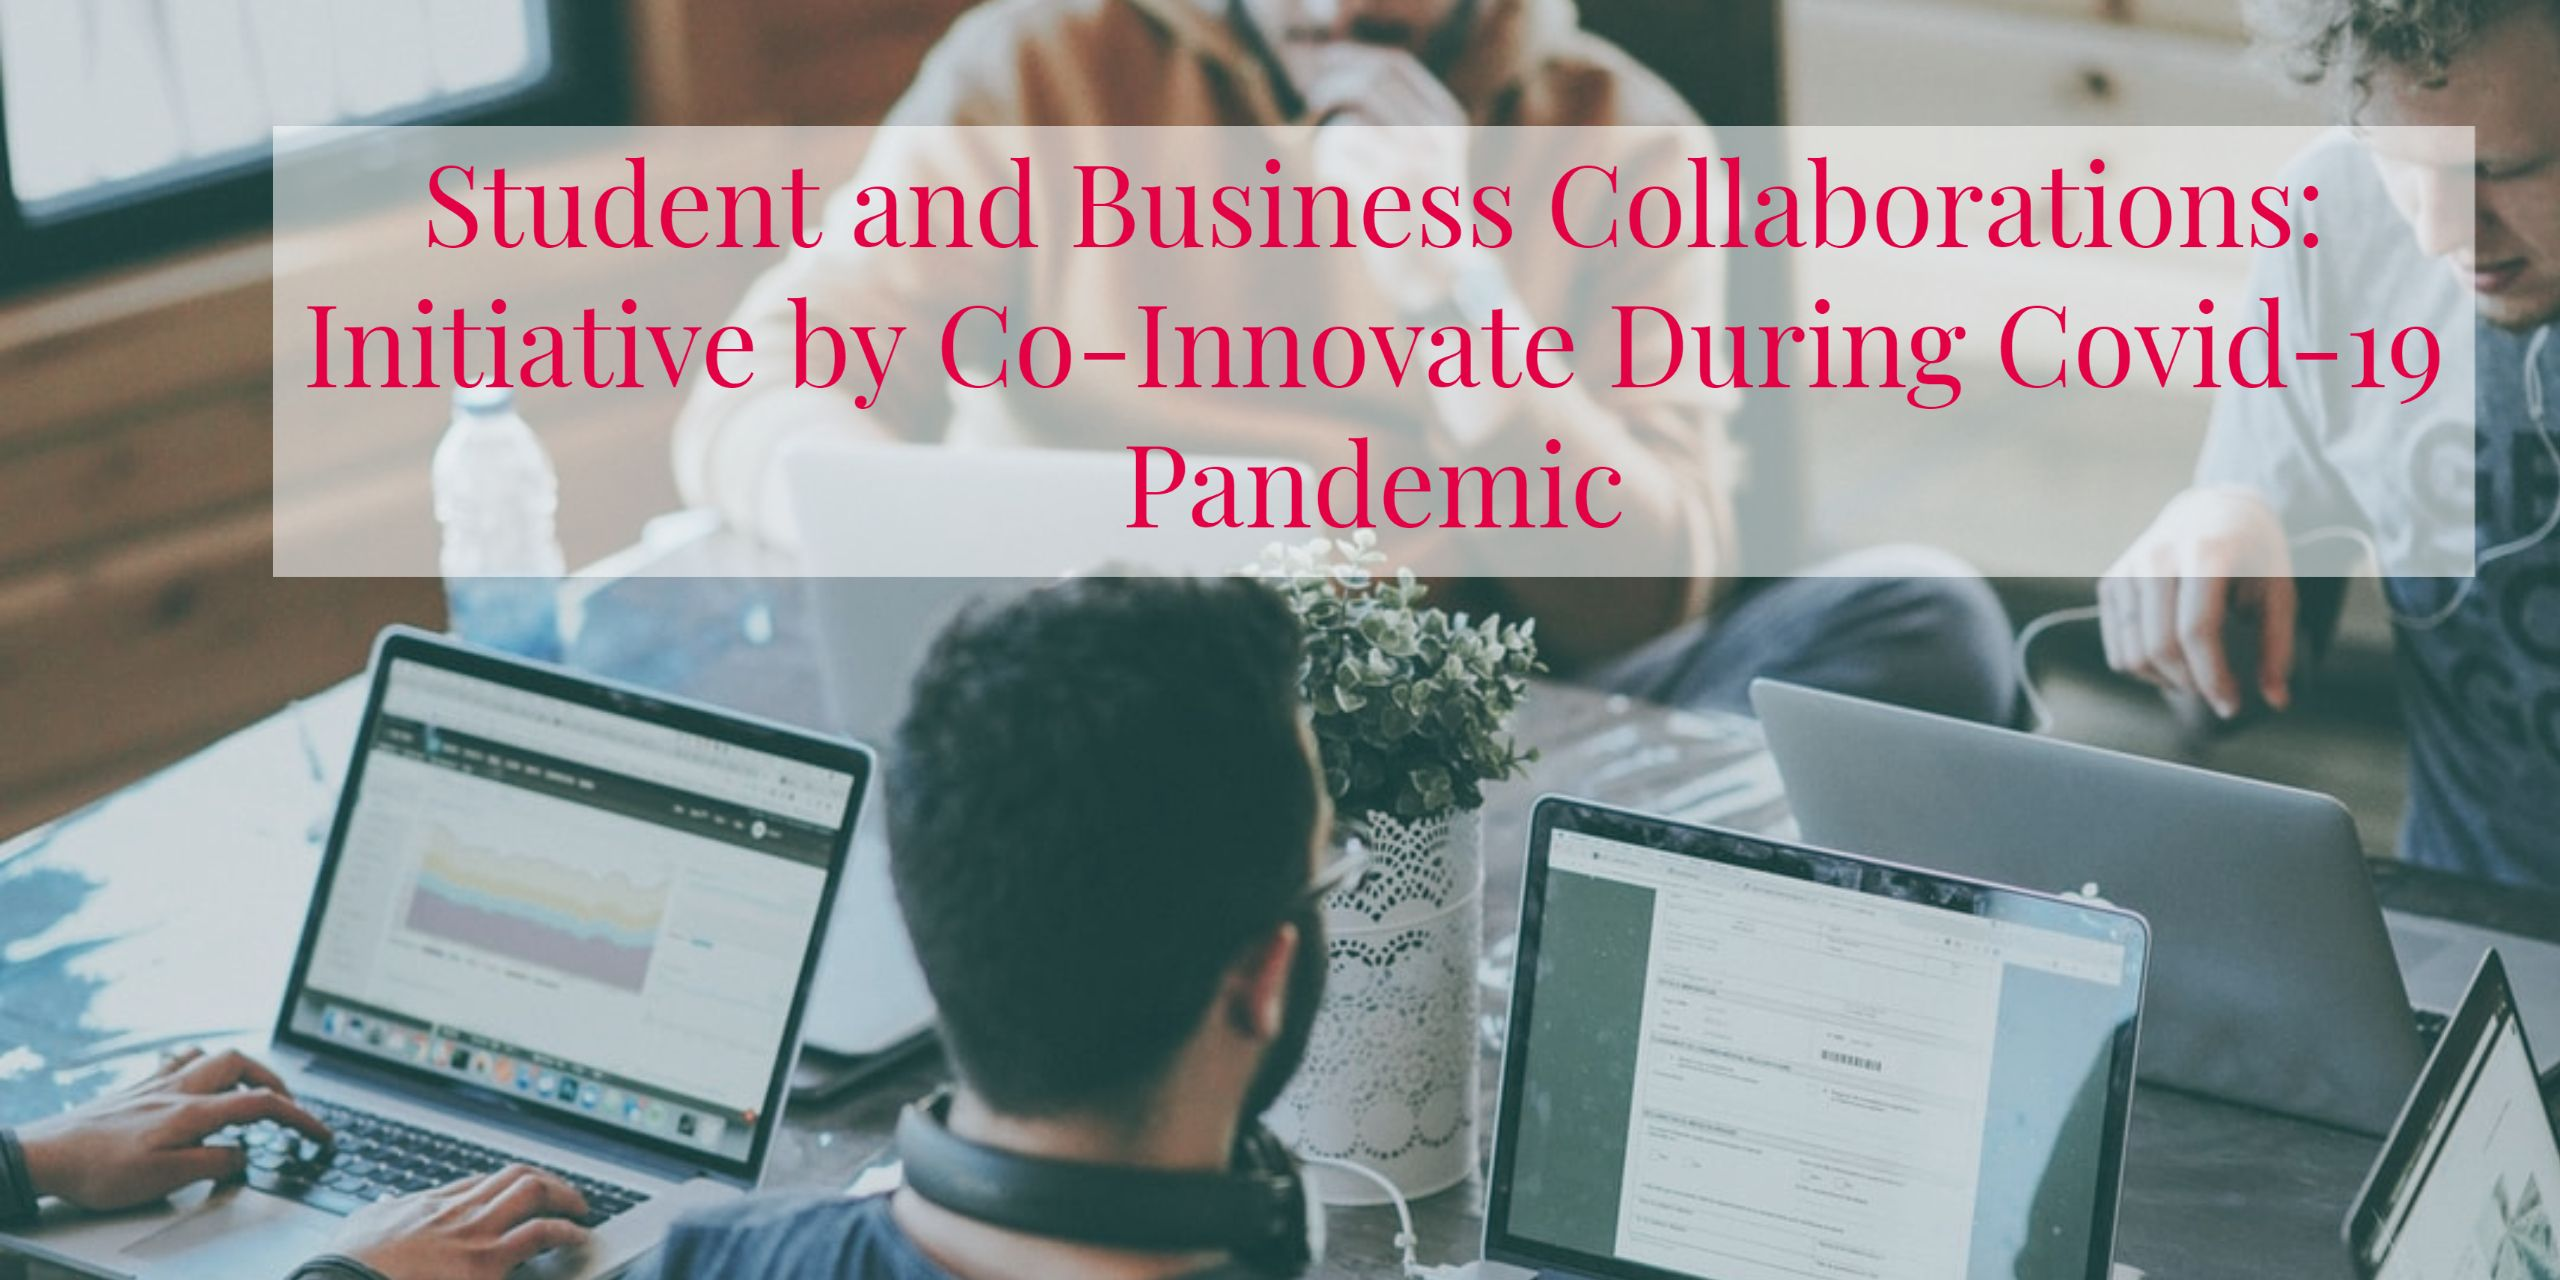 image of Student and Business Collaborations Initiative During Covid-19 Pandemic